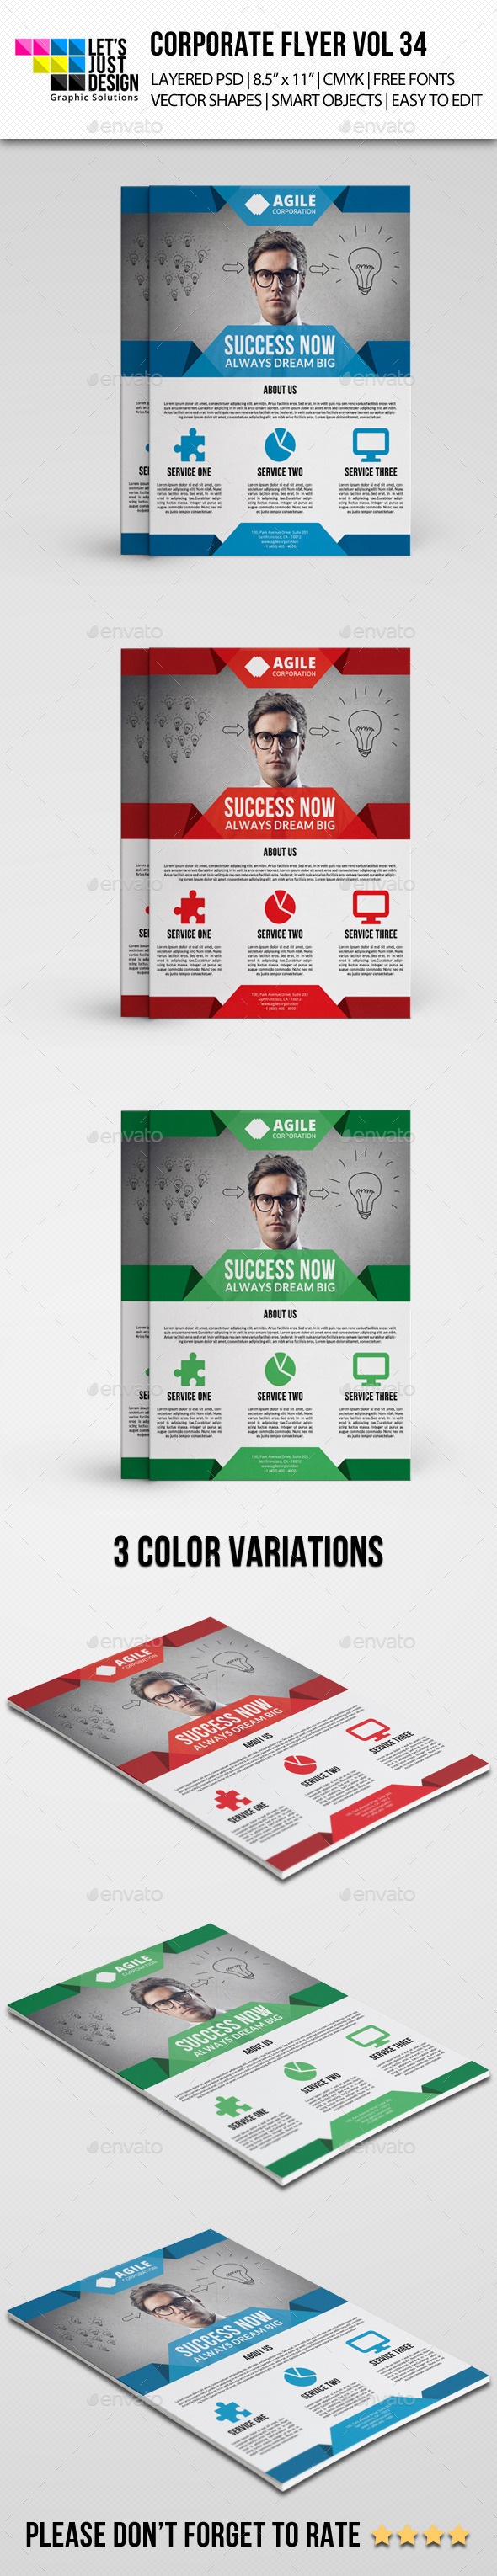 Corporate Flyer Template PSD | Buy and Download: http://graphicriver.net/item/corporate-flyer-template-vol-34/9070437?WT.ac=category_thumb&WT.z_author=letsjustdesign&ref=ksioks